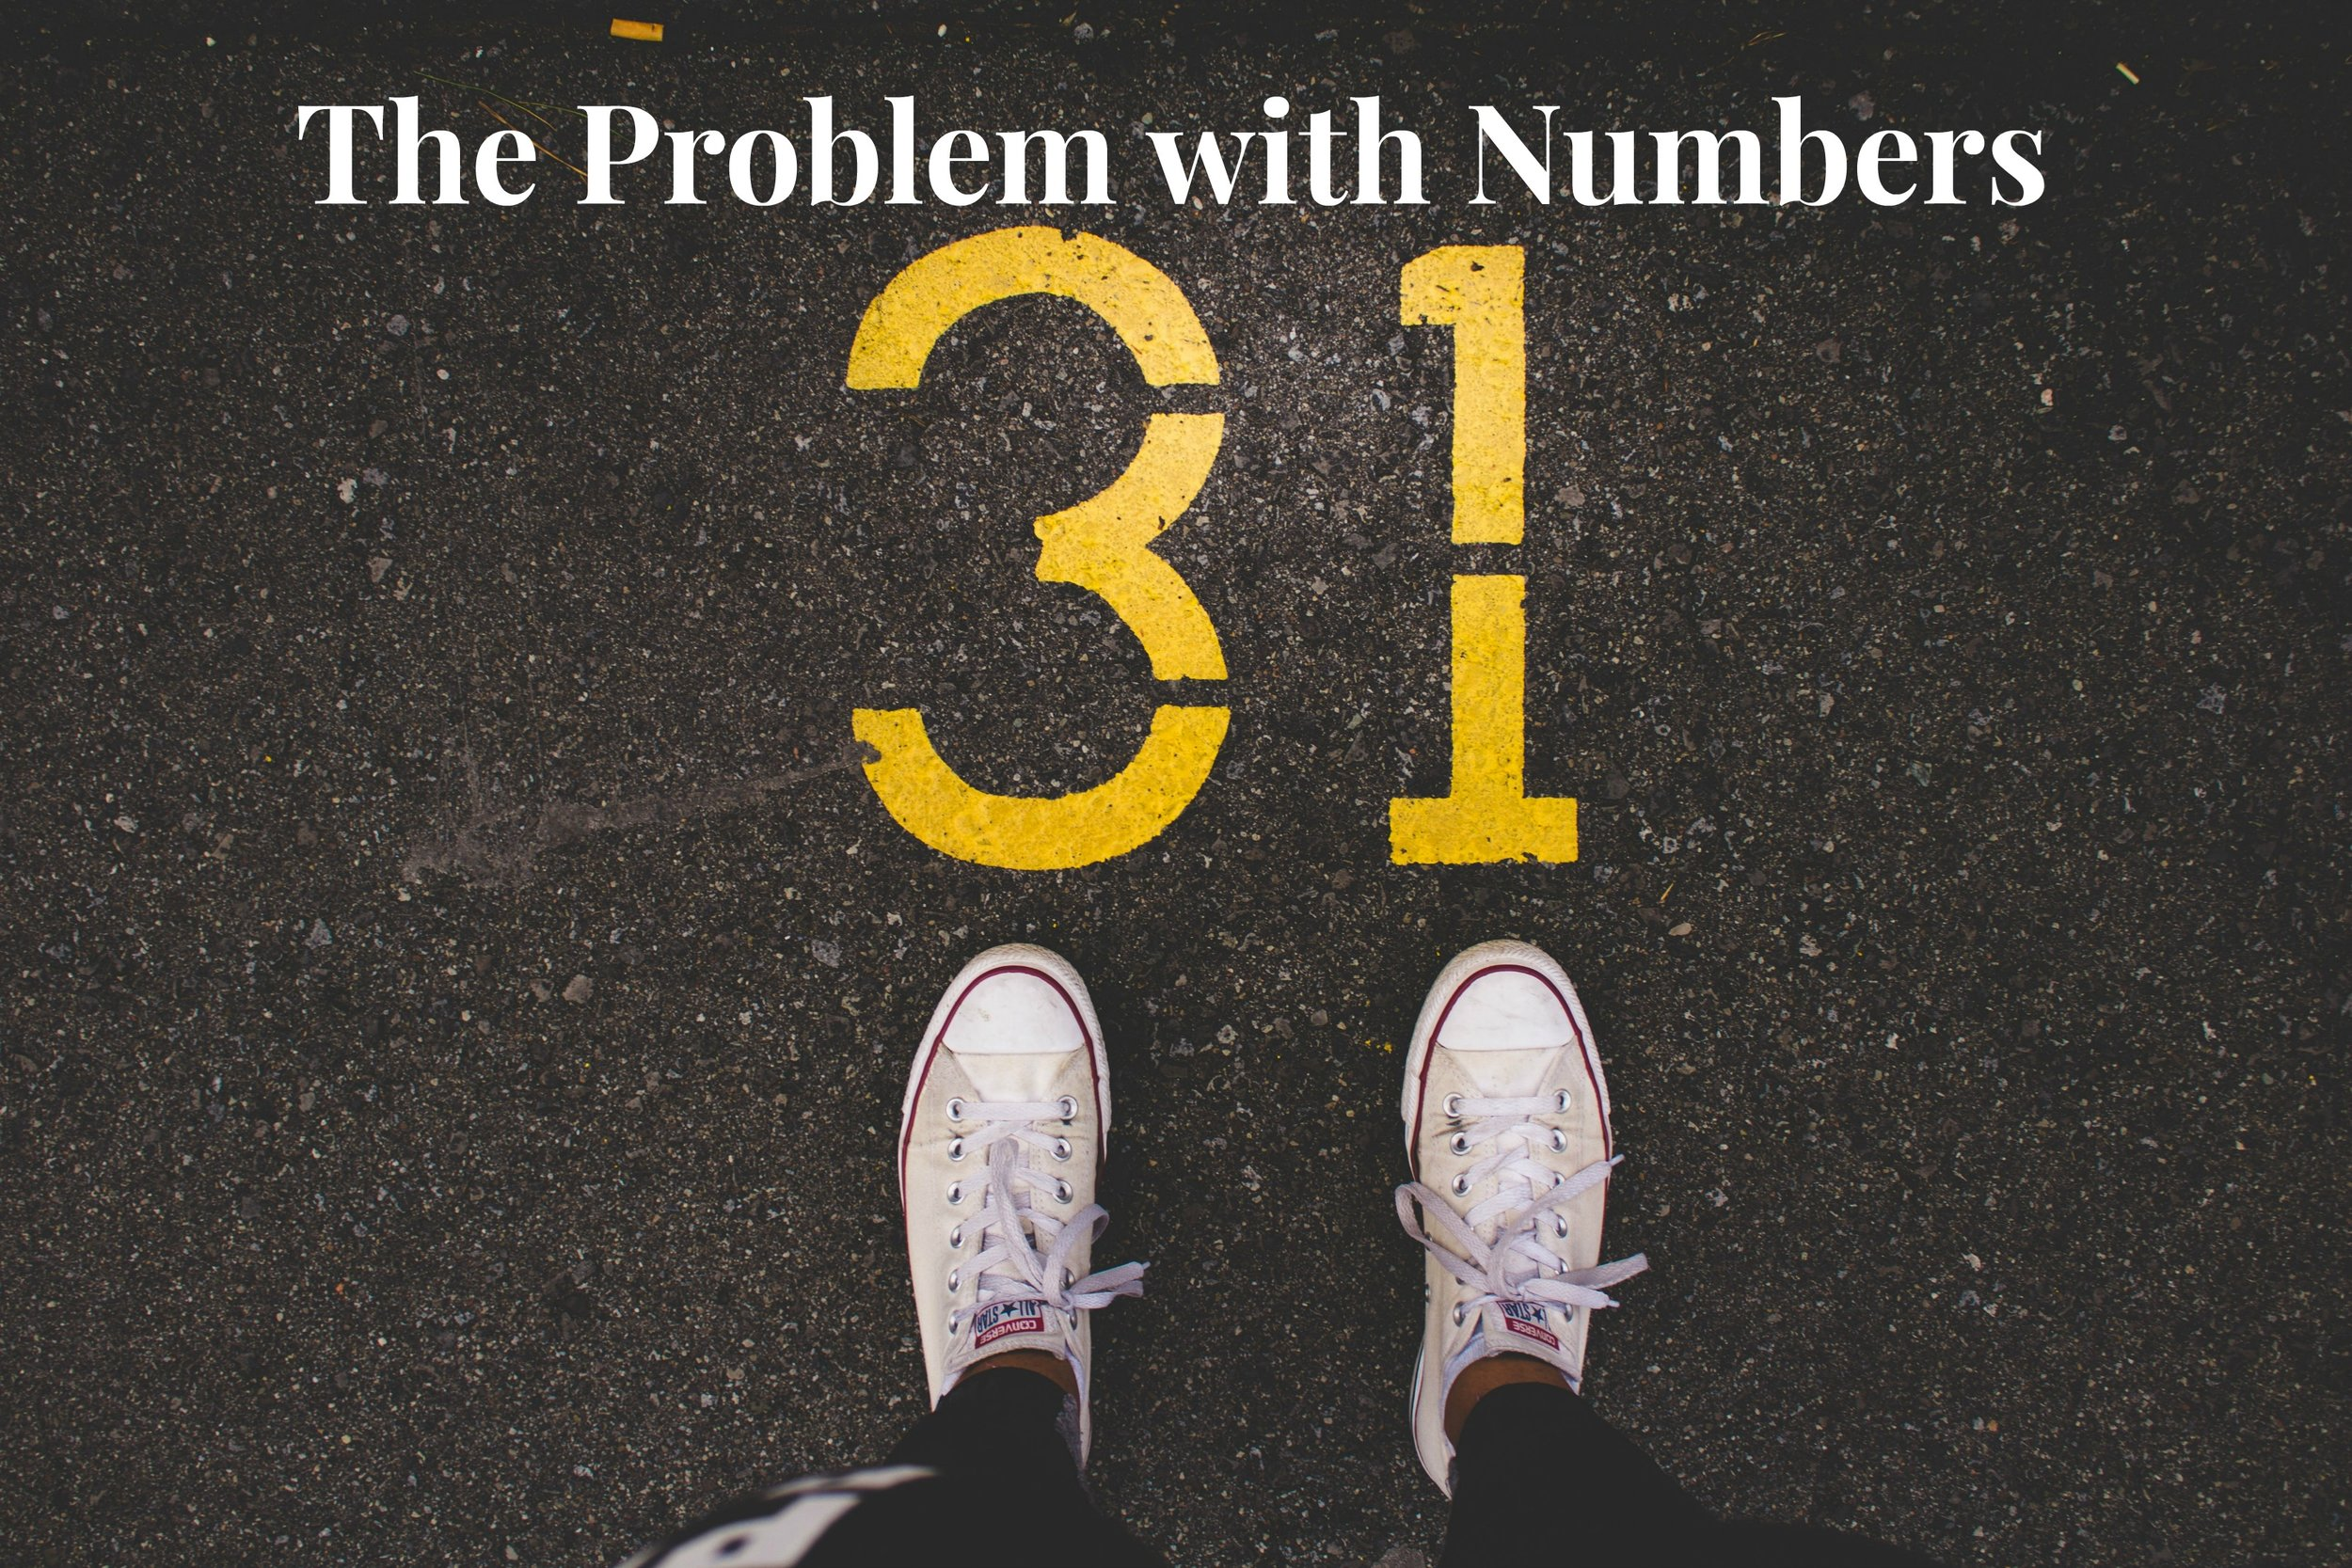 problem-with-numbers-title.jpg